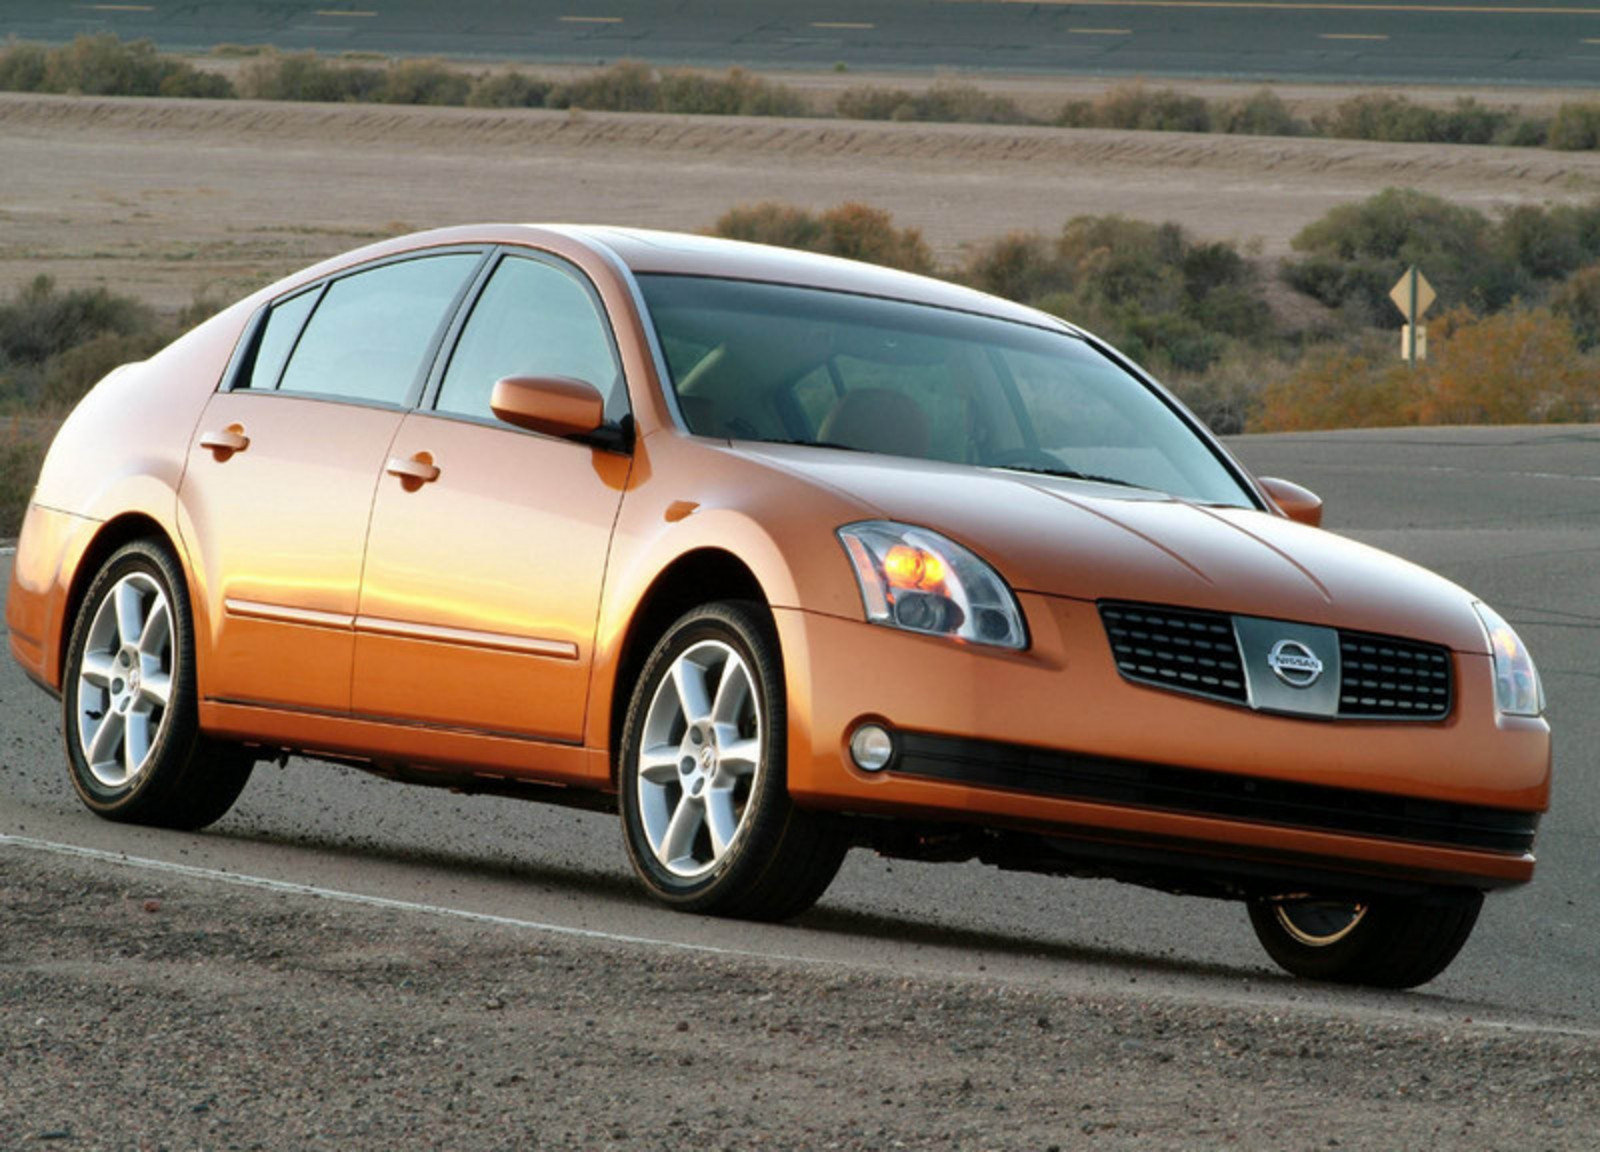 2006 nissan maxima se picture 11411 car review top speed. Black Bedroom Furniture Sets. Home Design Ideas